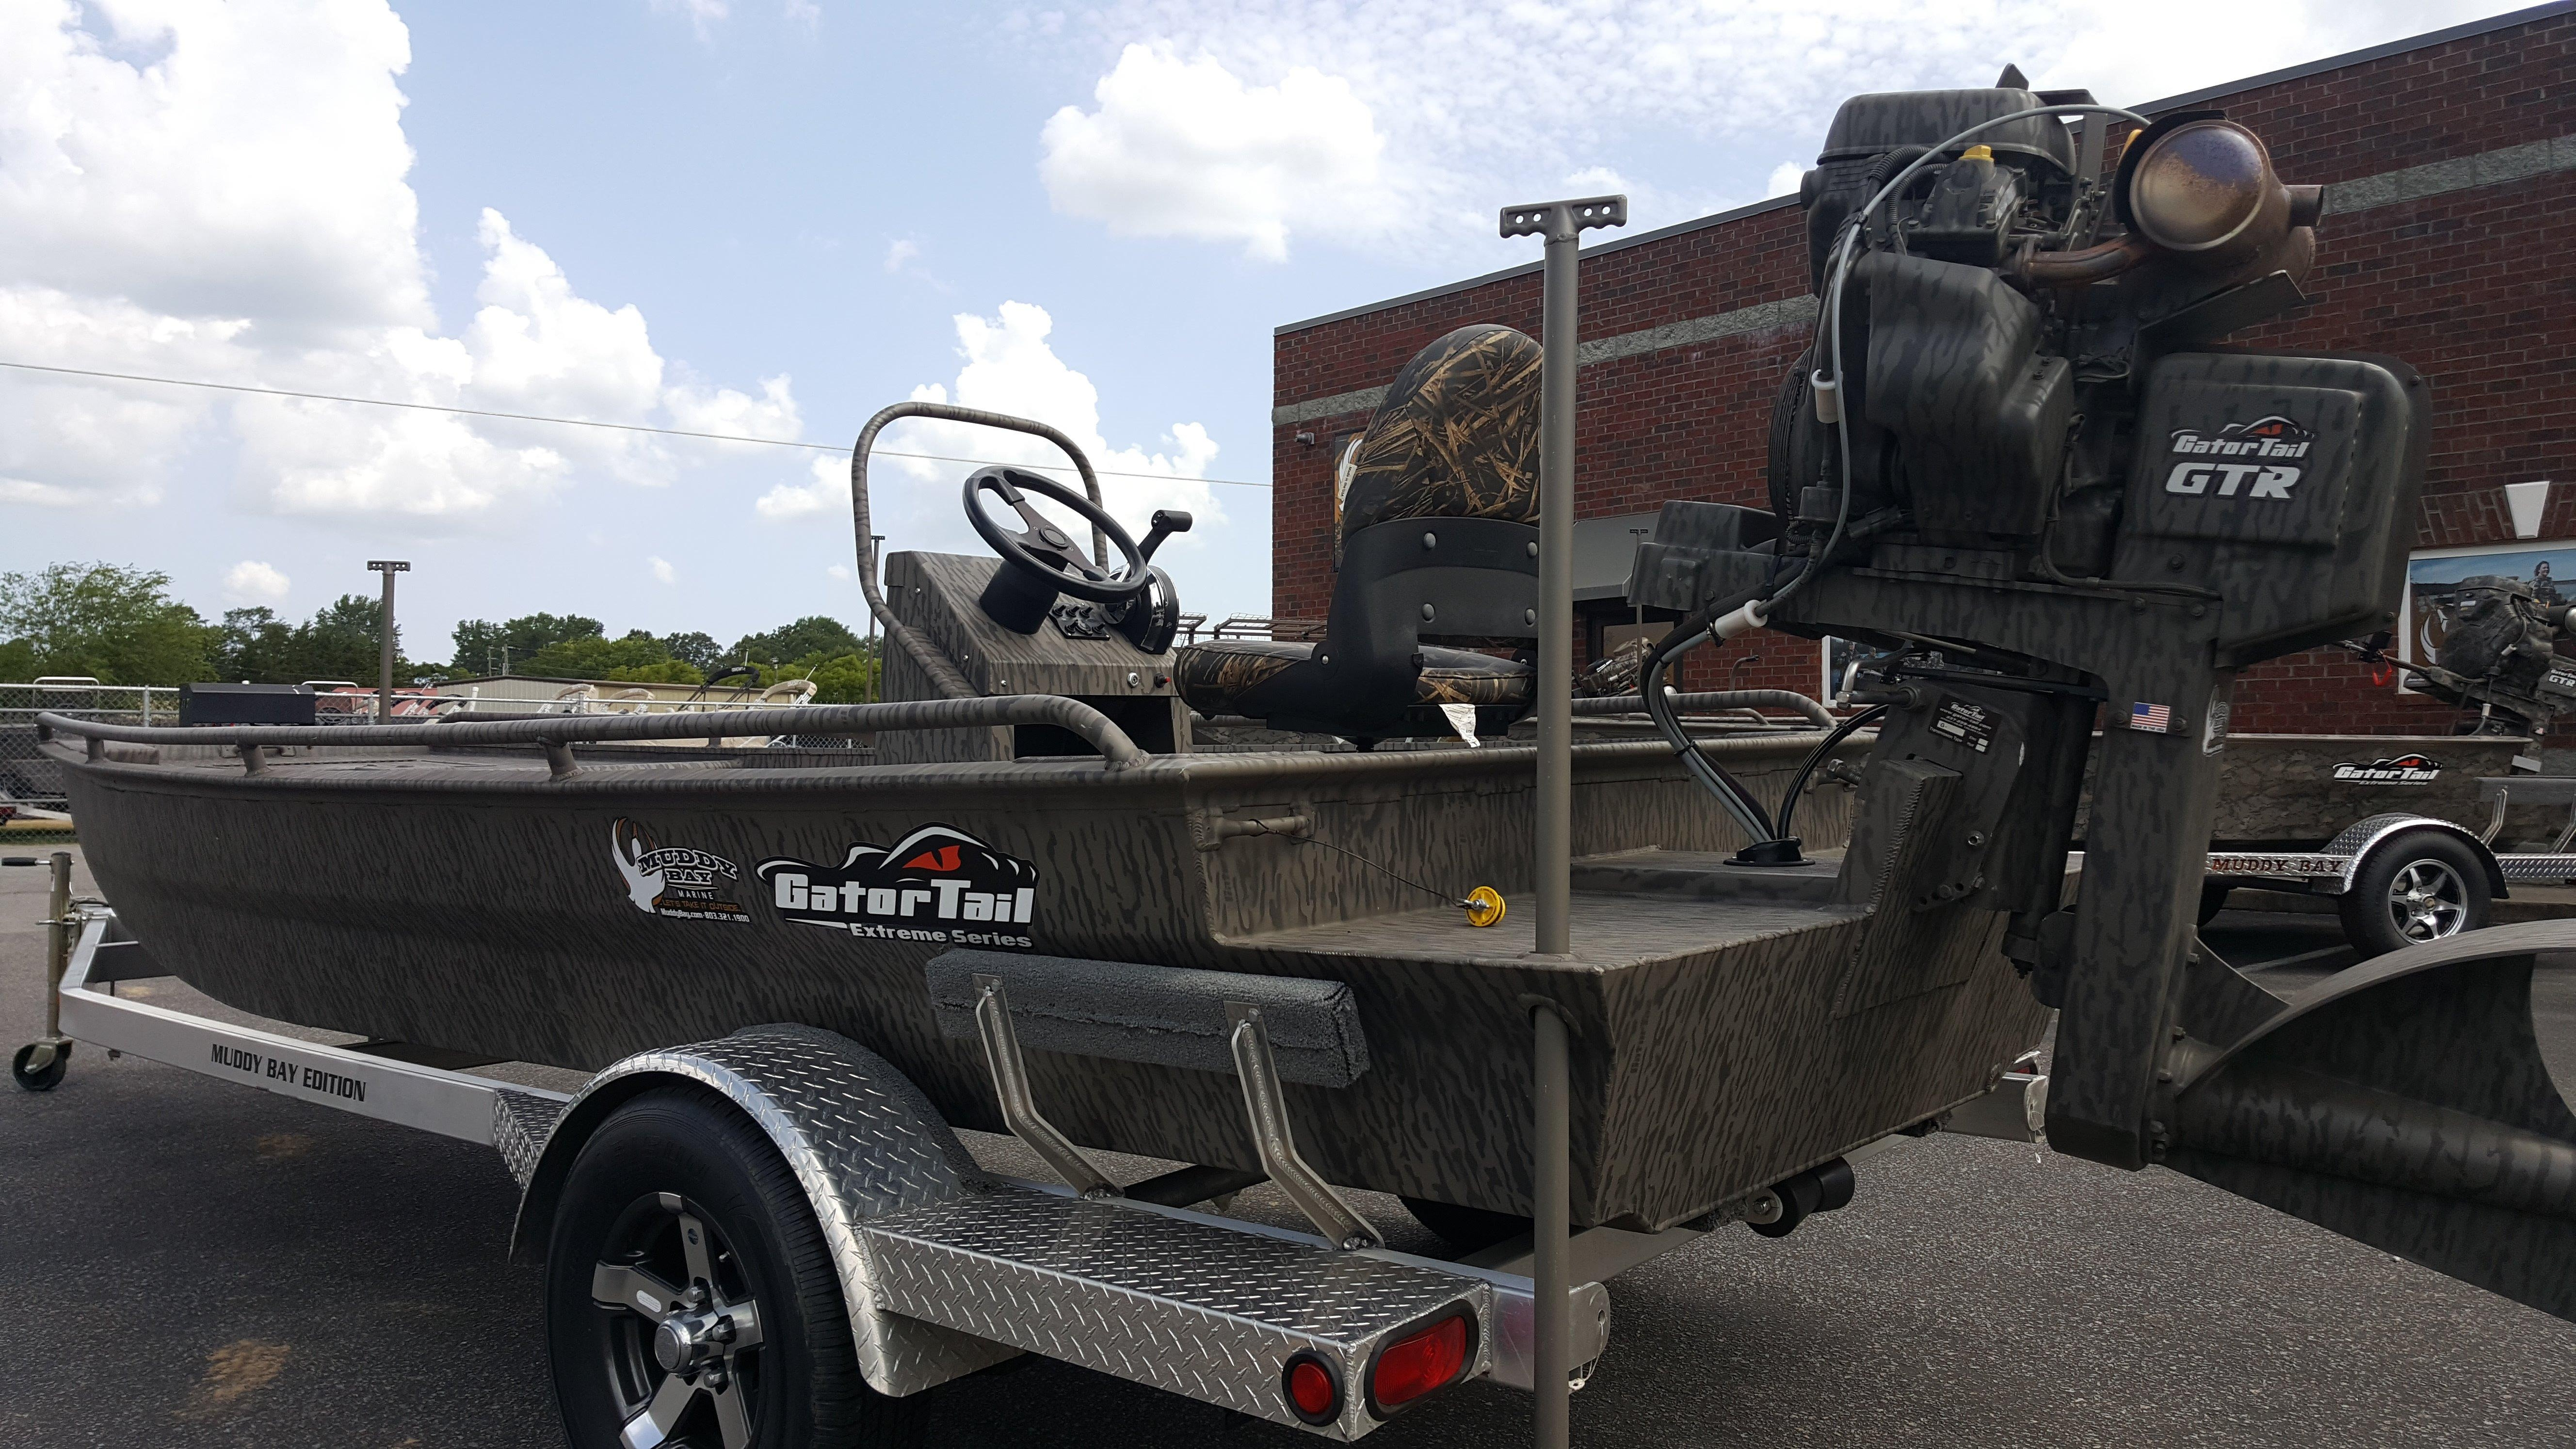 Muddy Bay Gator Tail 1854 Extreme Center Console